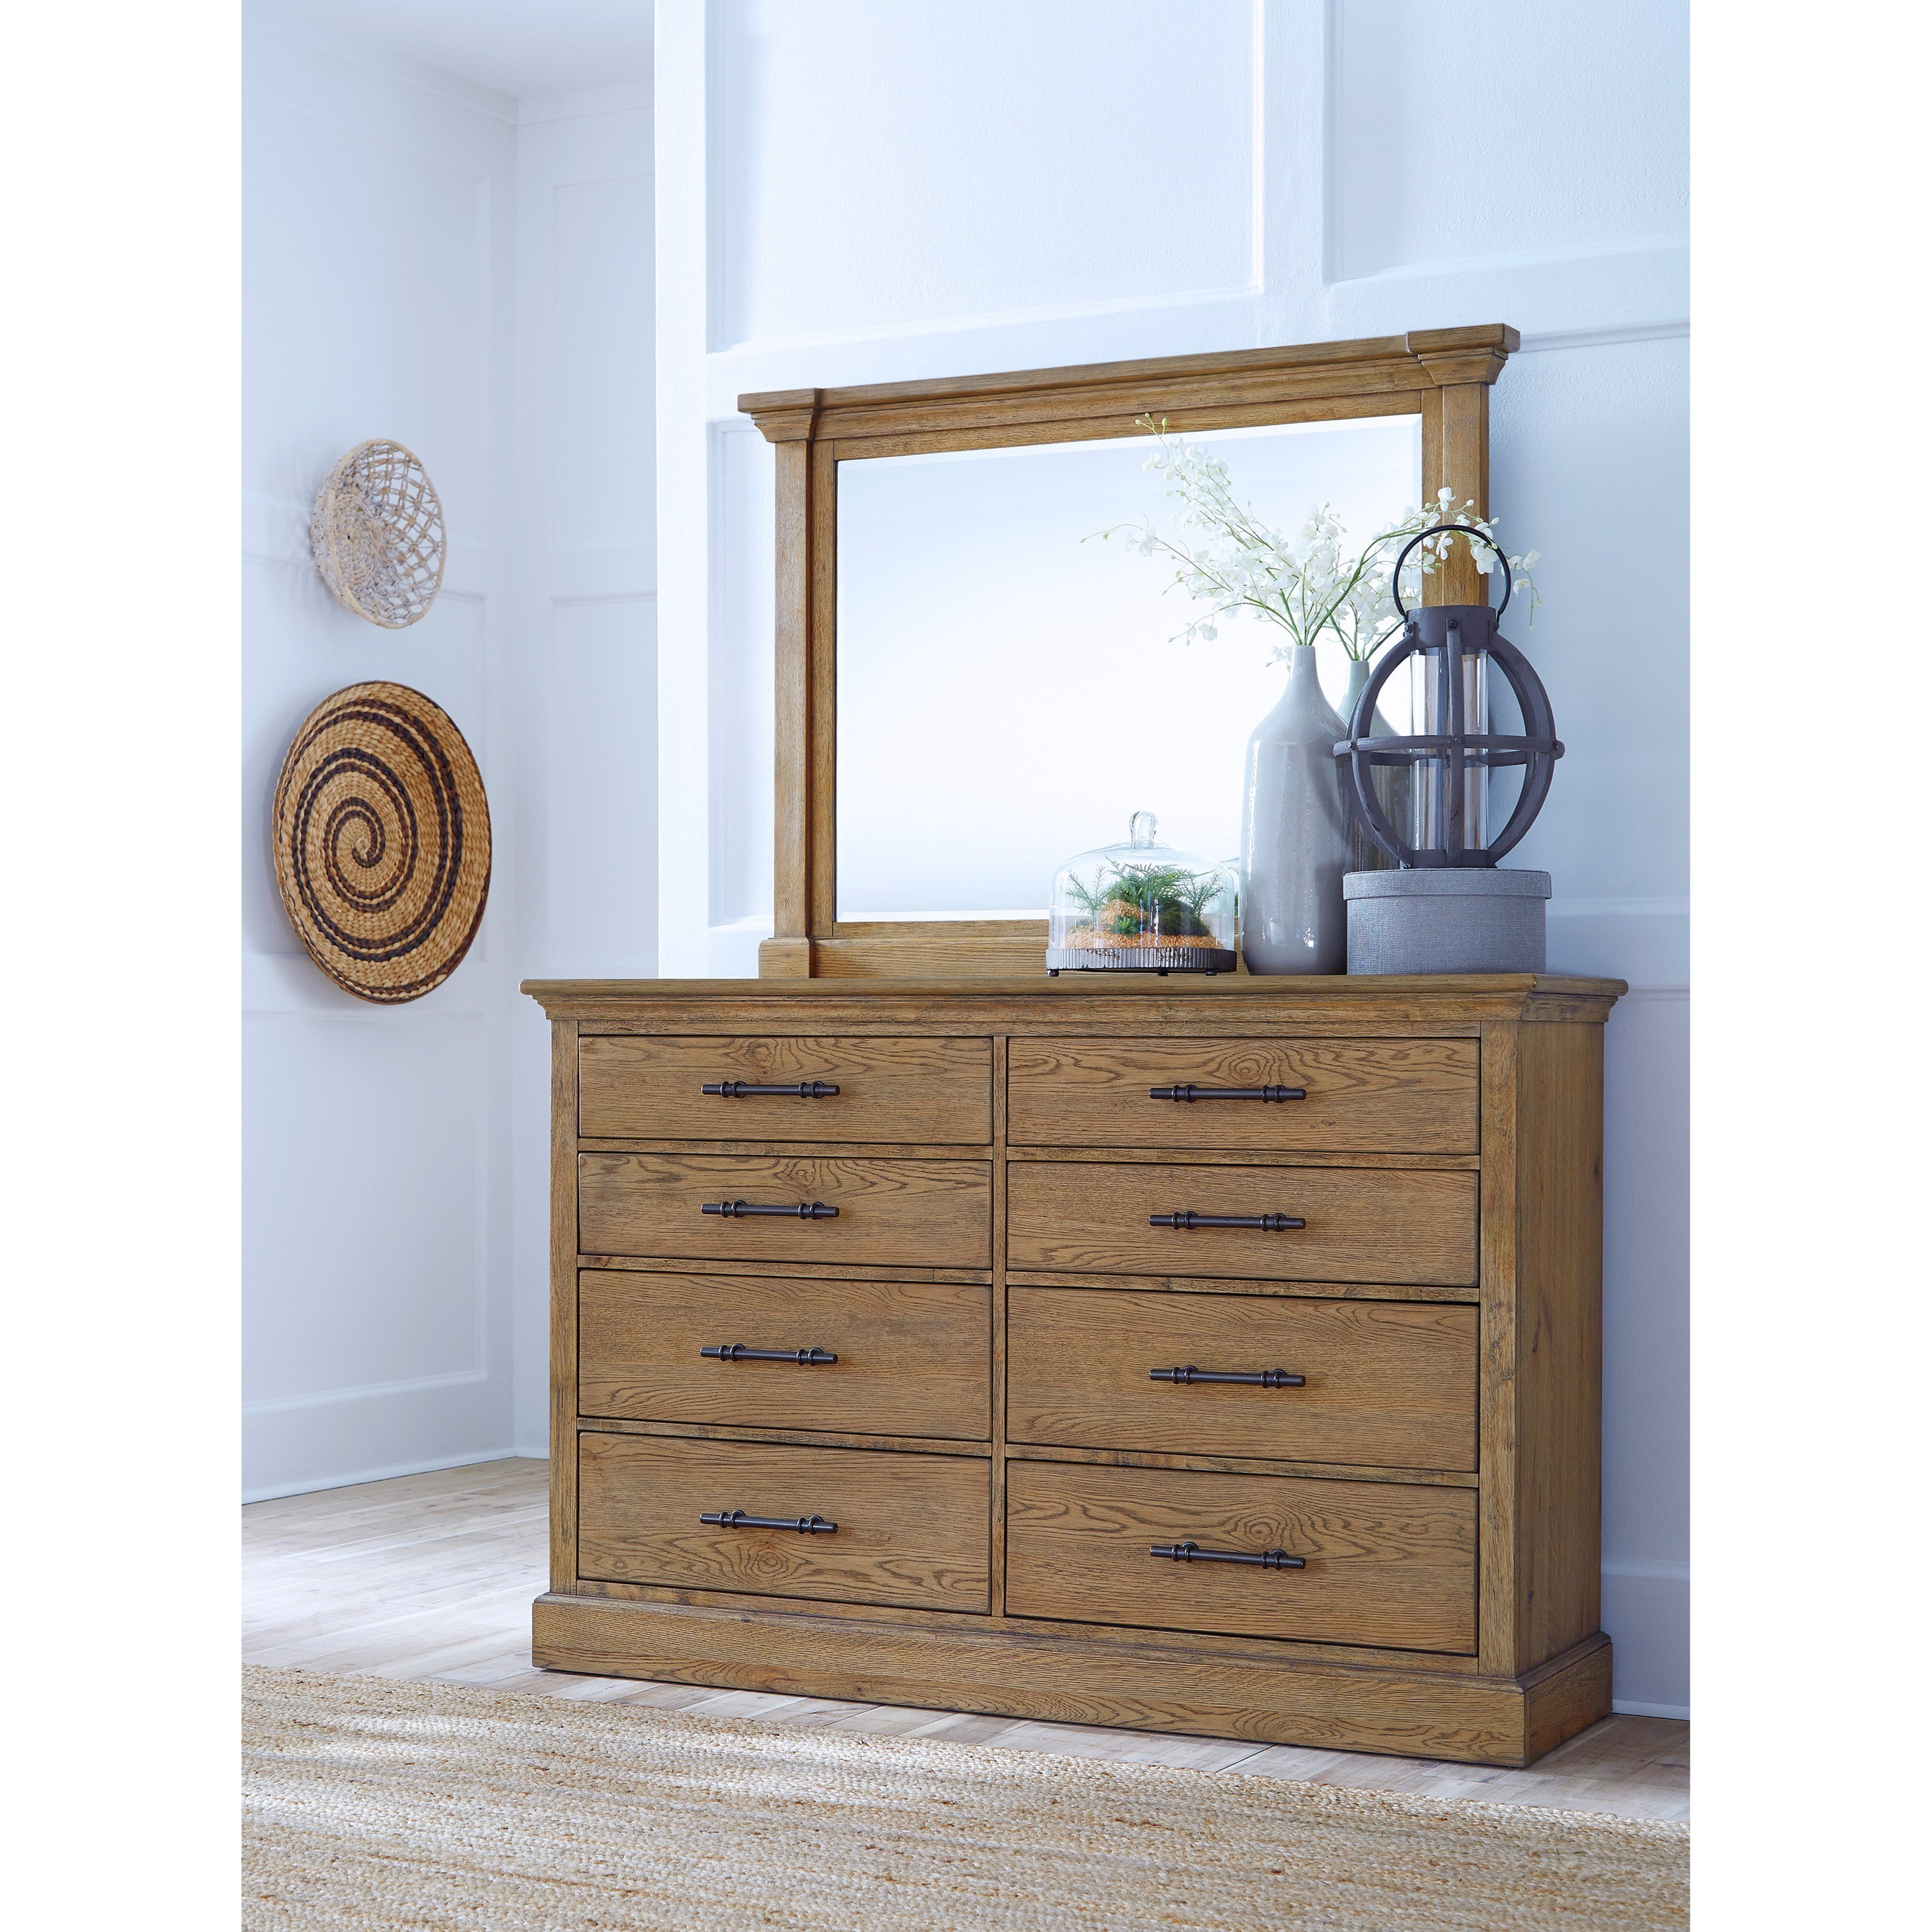 Manchester 8 Drawer Dresser and Mirror Set by Aspenhome at Baer's Furniture